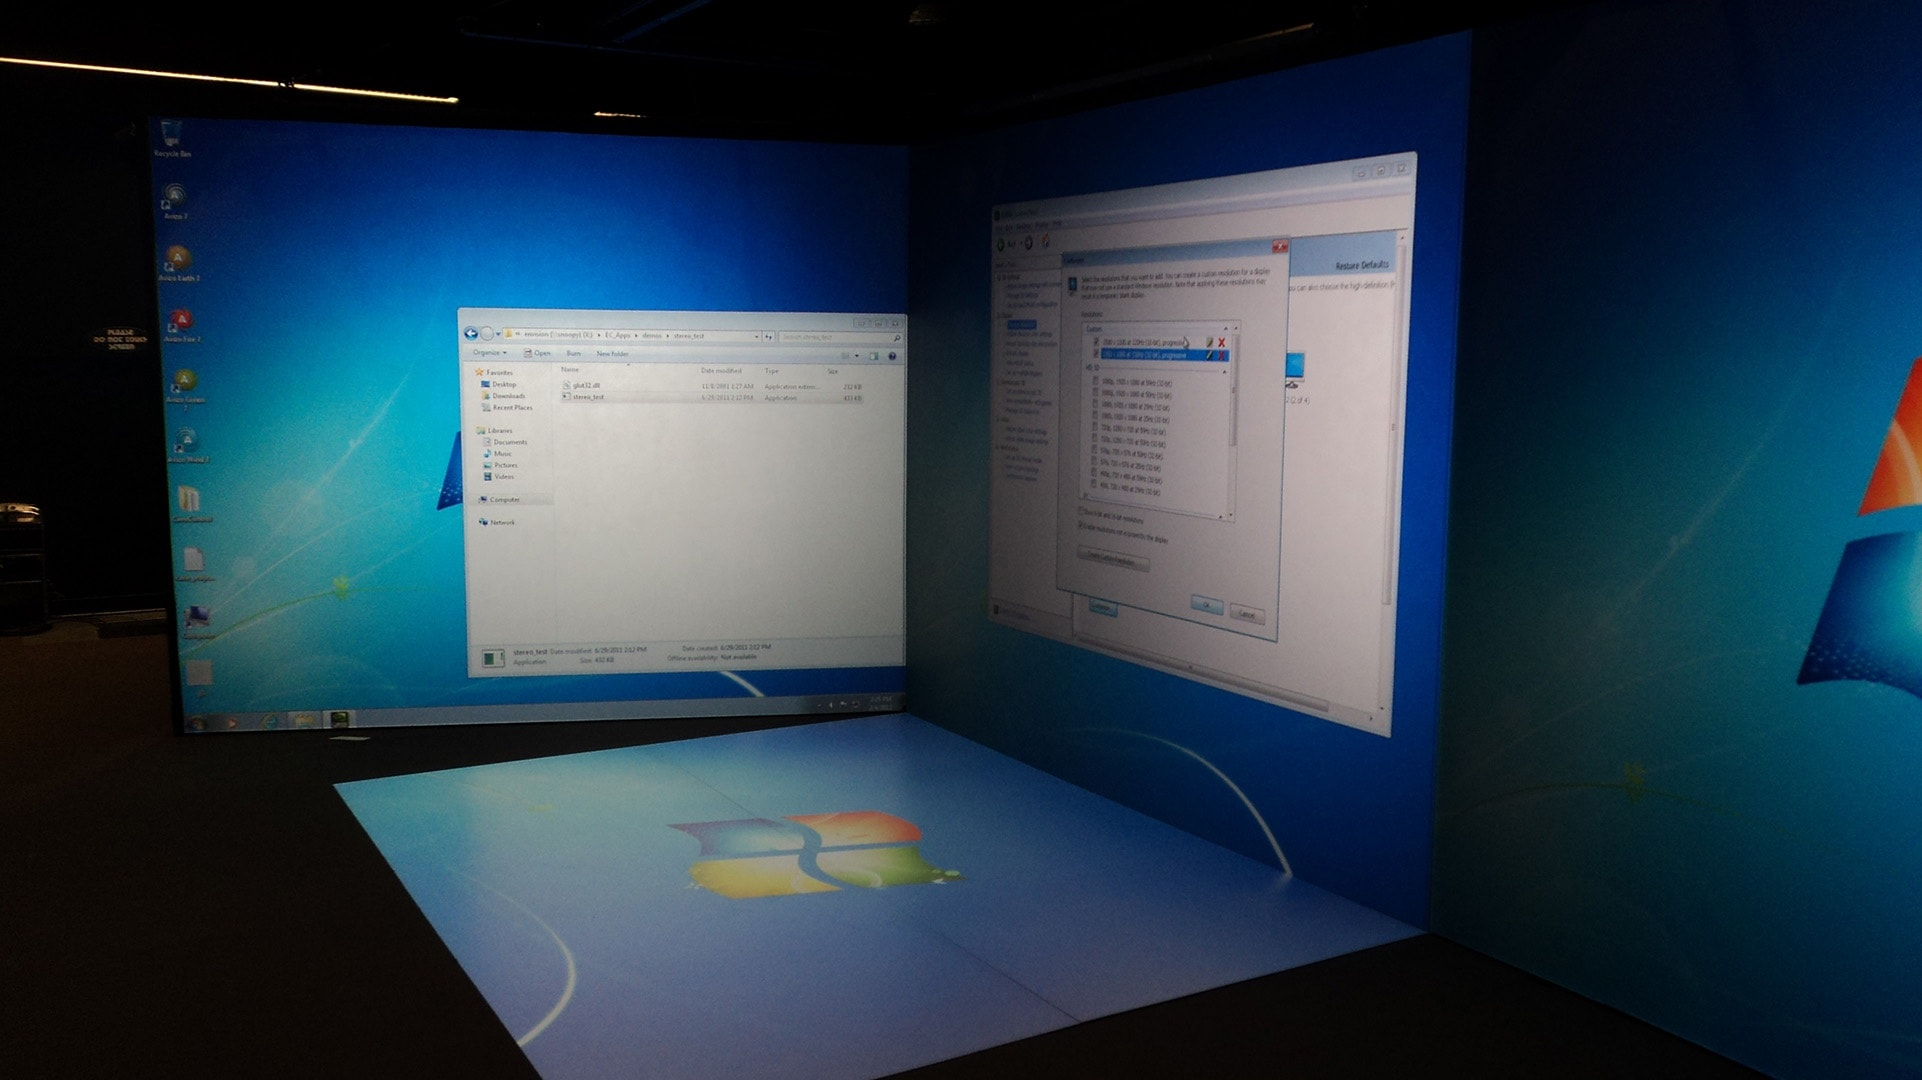 IGI flex cave system microsoft OS large HD screen projection